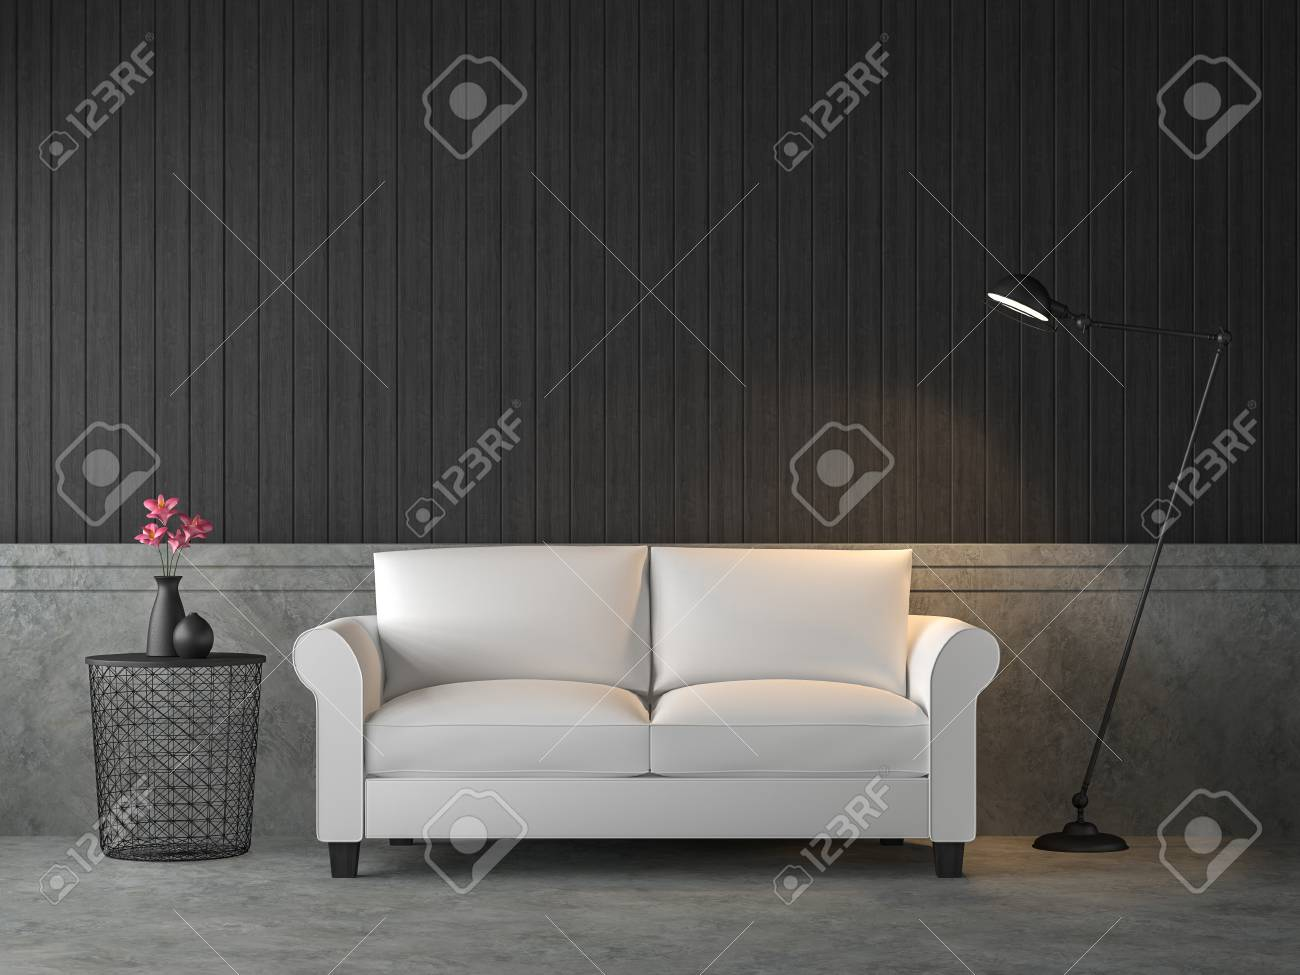 Loft style living room 3d render,There are polished concrete wall and floor,furnished with white sofa,Decorating with industrial style lamp. - 120982614